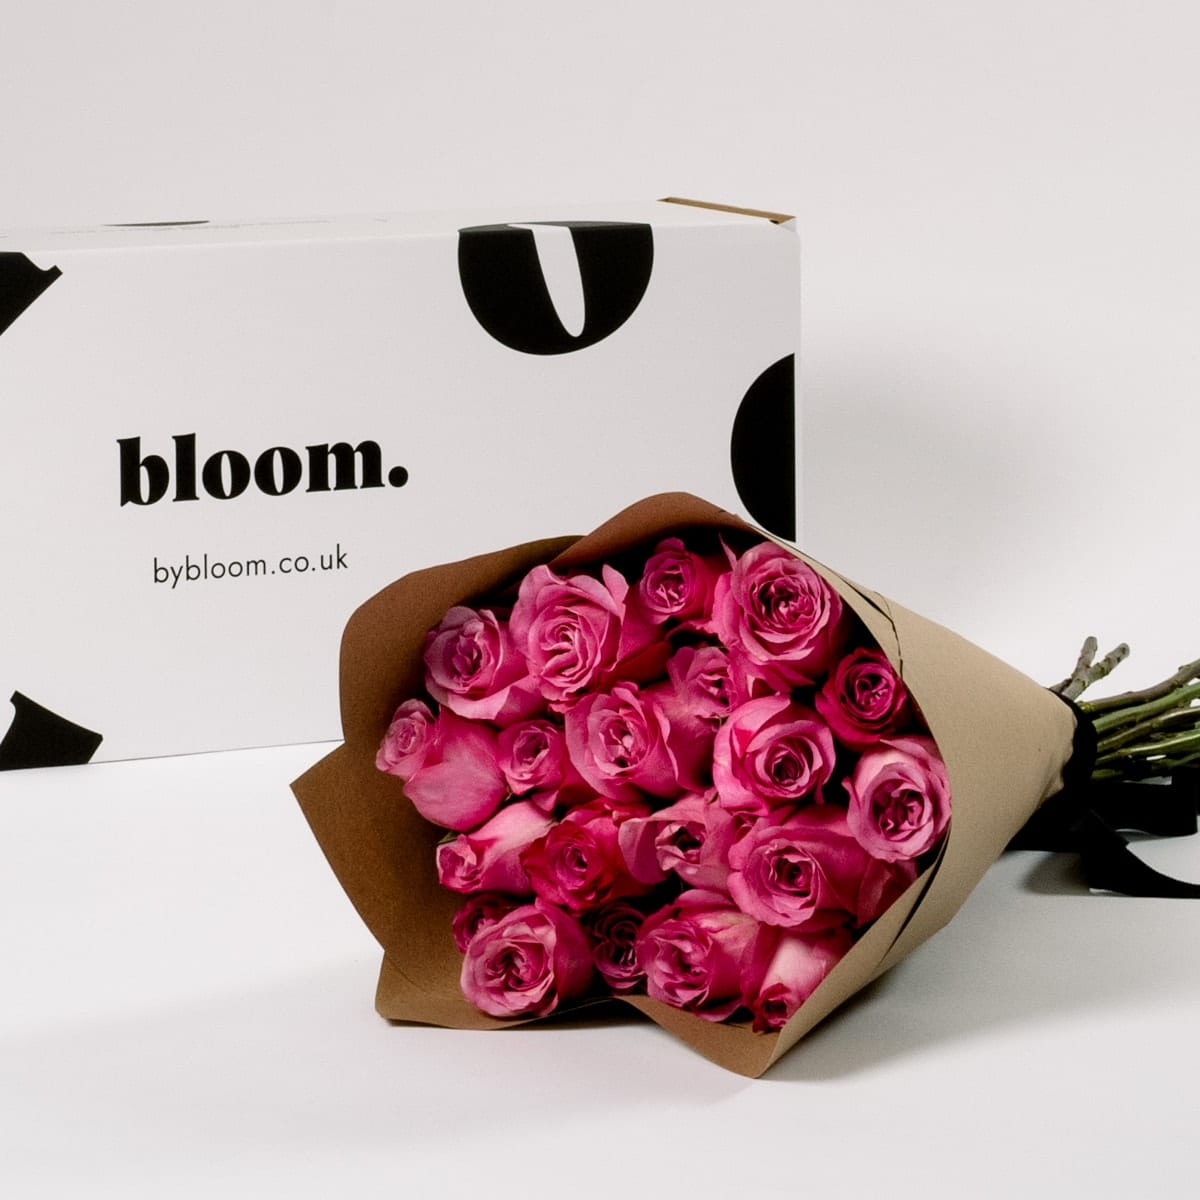 Bloom Flower Delivery | Cerise Pink Rose